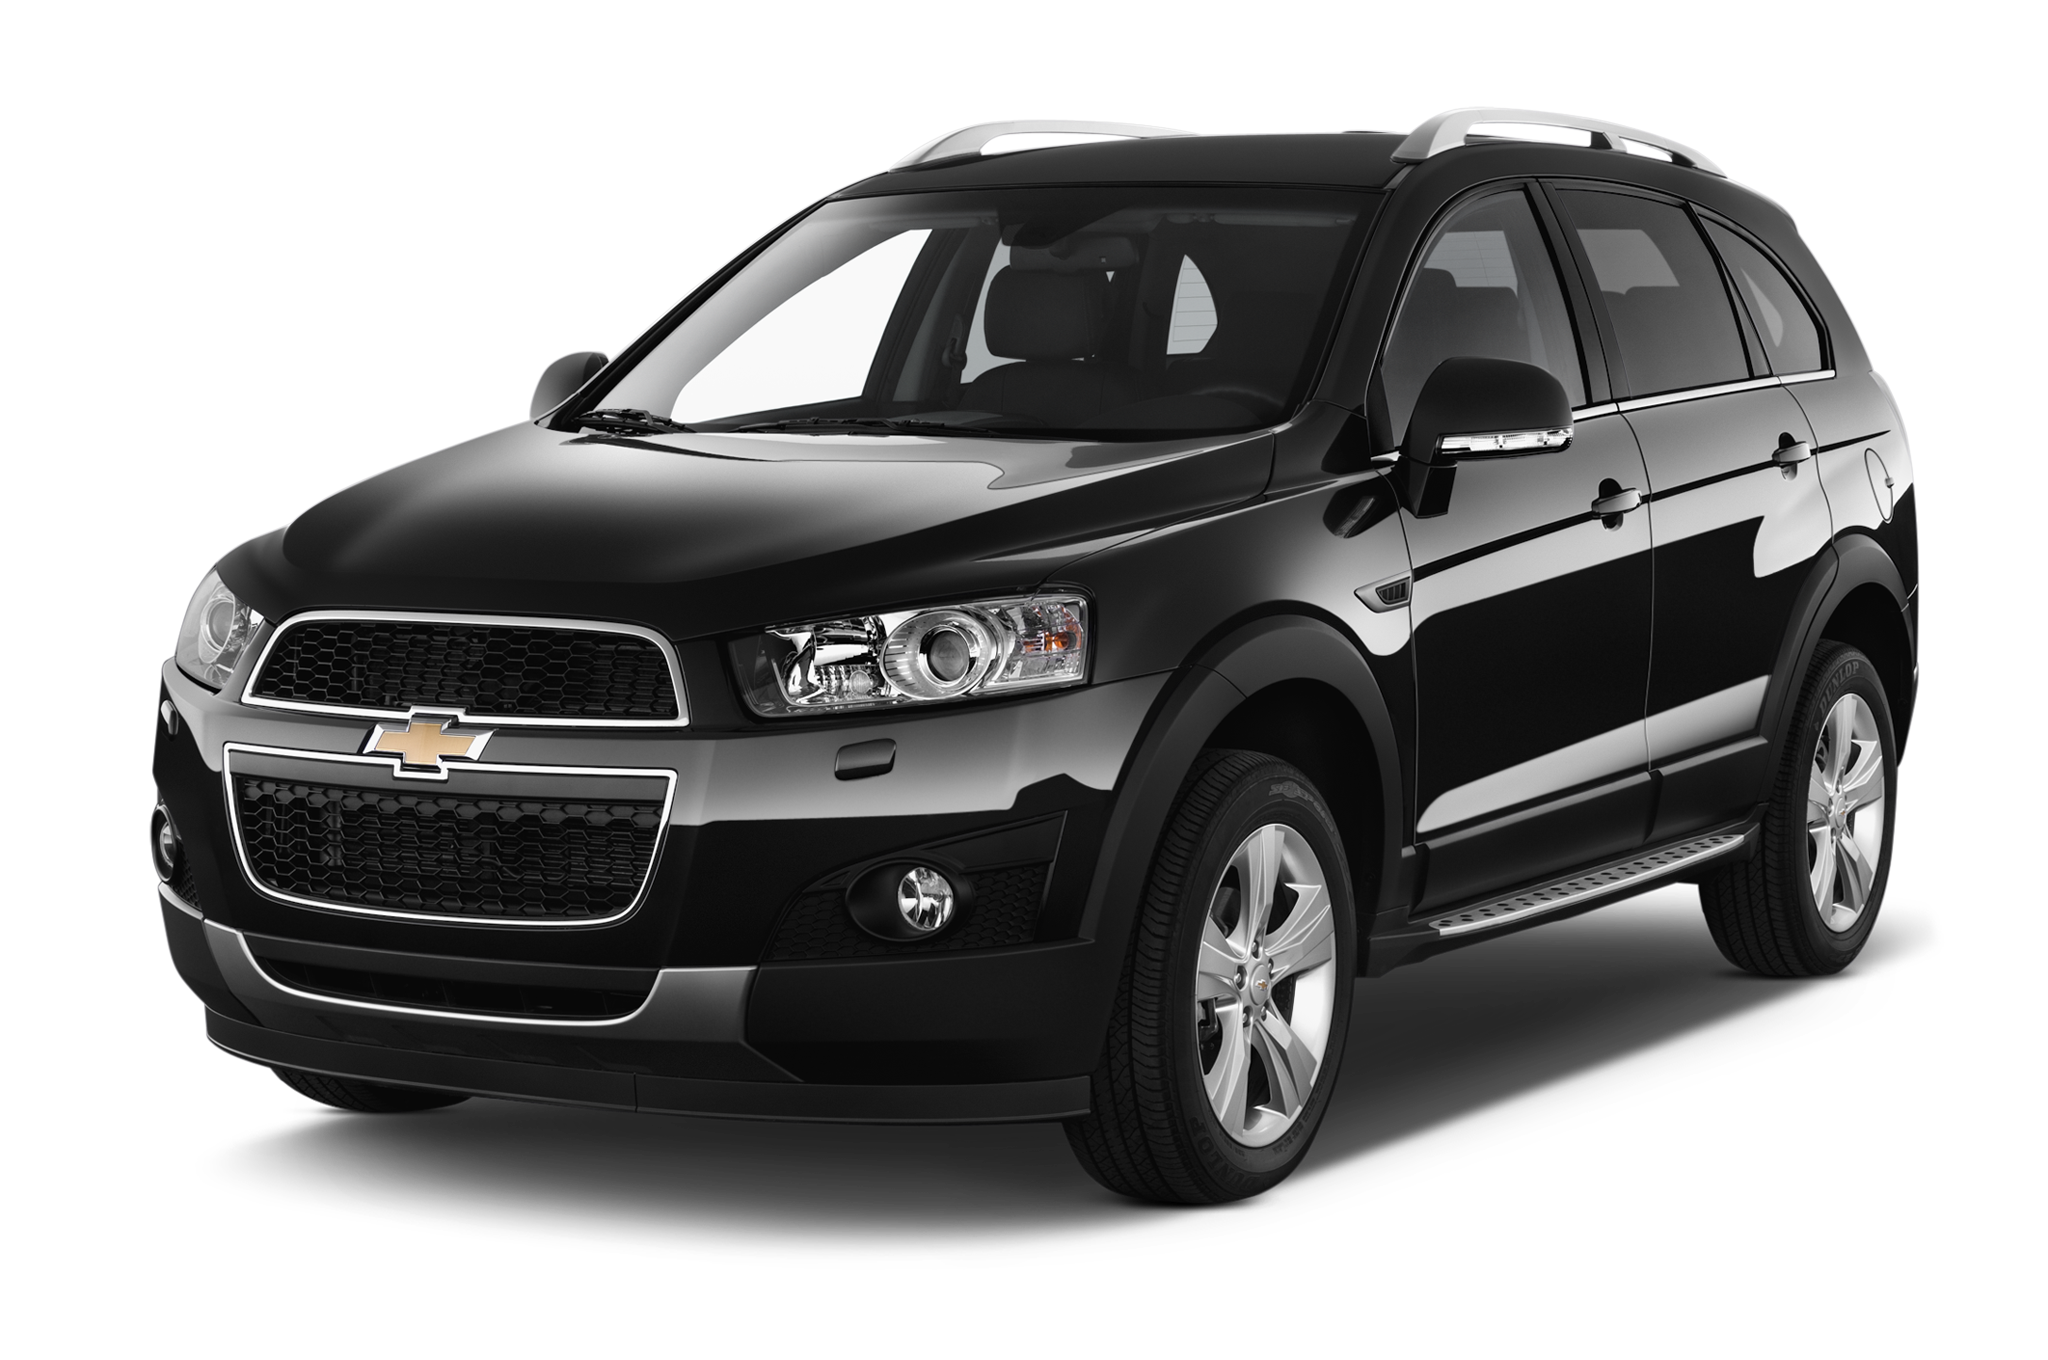 2013 chevrolet captiva sport reviews msn autos. Black Bedroom Furniture Sets. Home Design Ideas